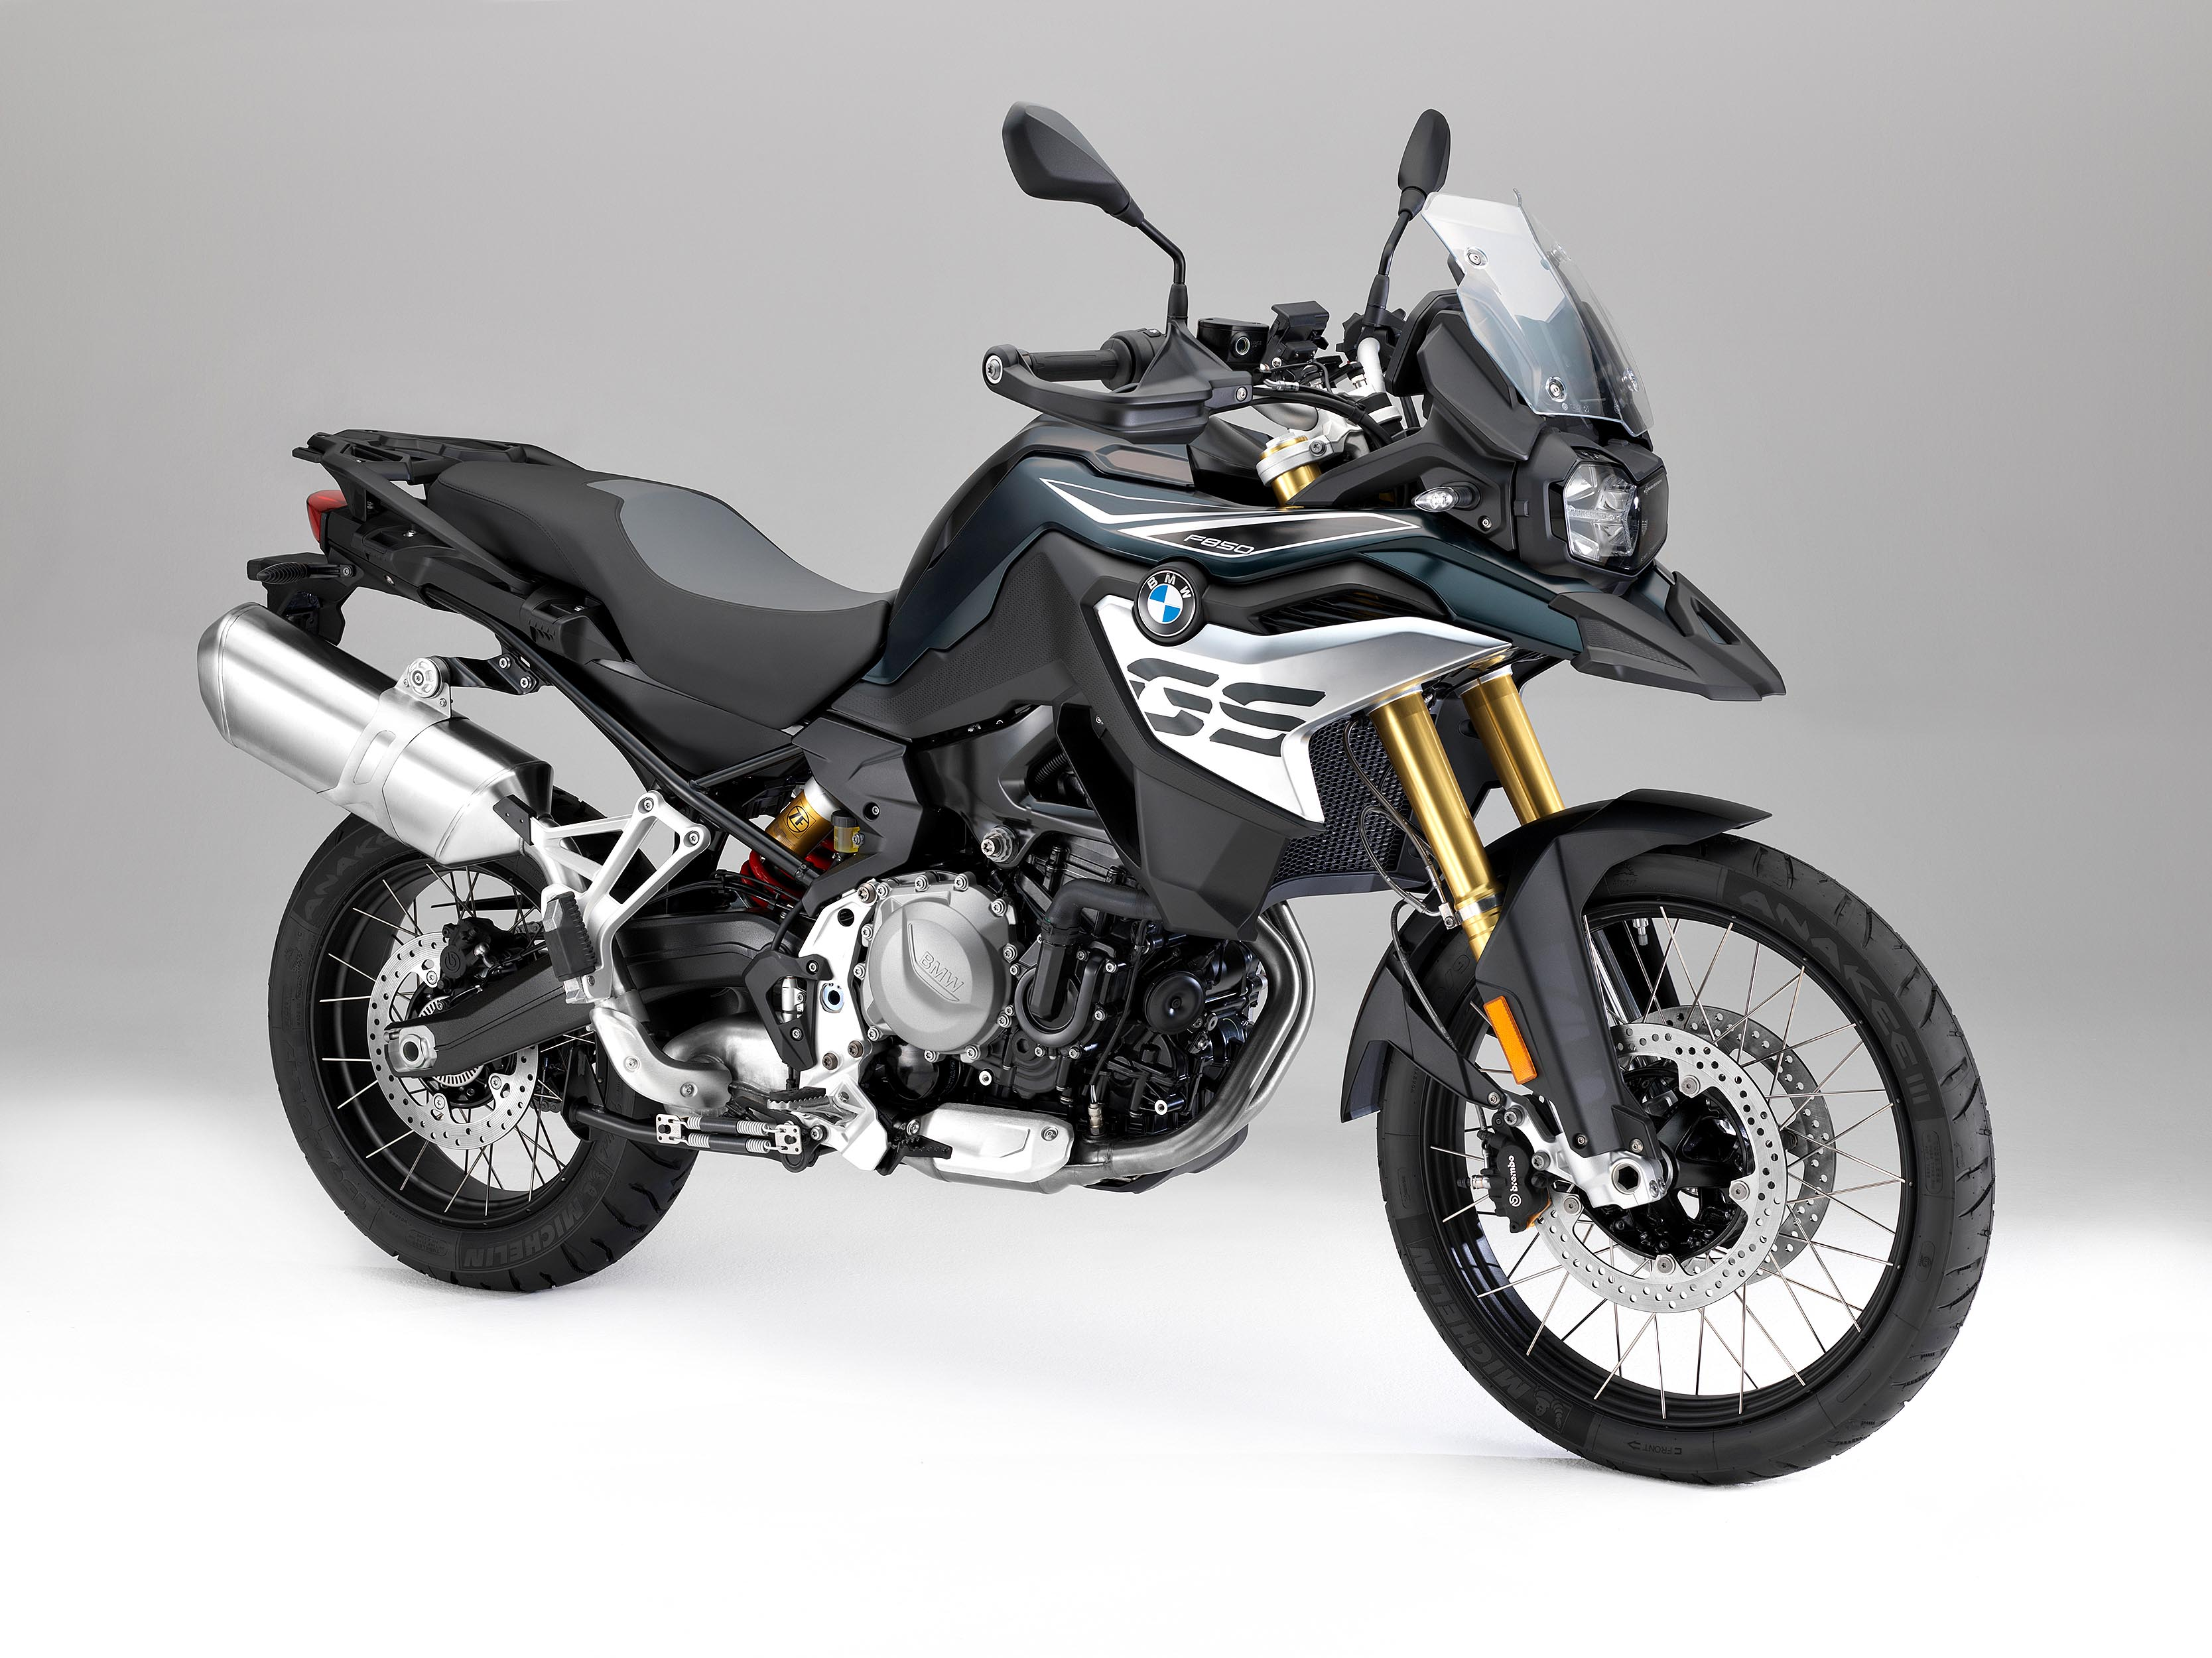 2018 Bmw F850gs And F750gs First Look Revzilla 2009 F650gs Wiring Diagram